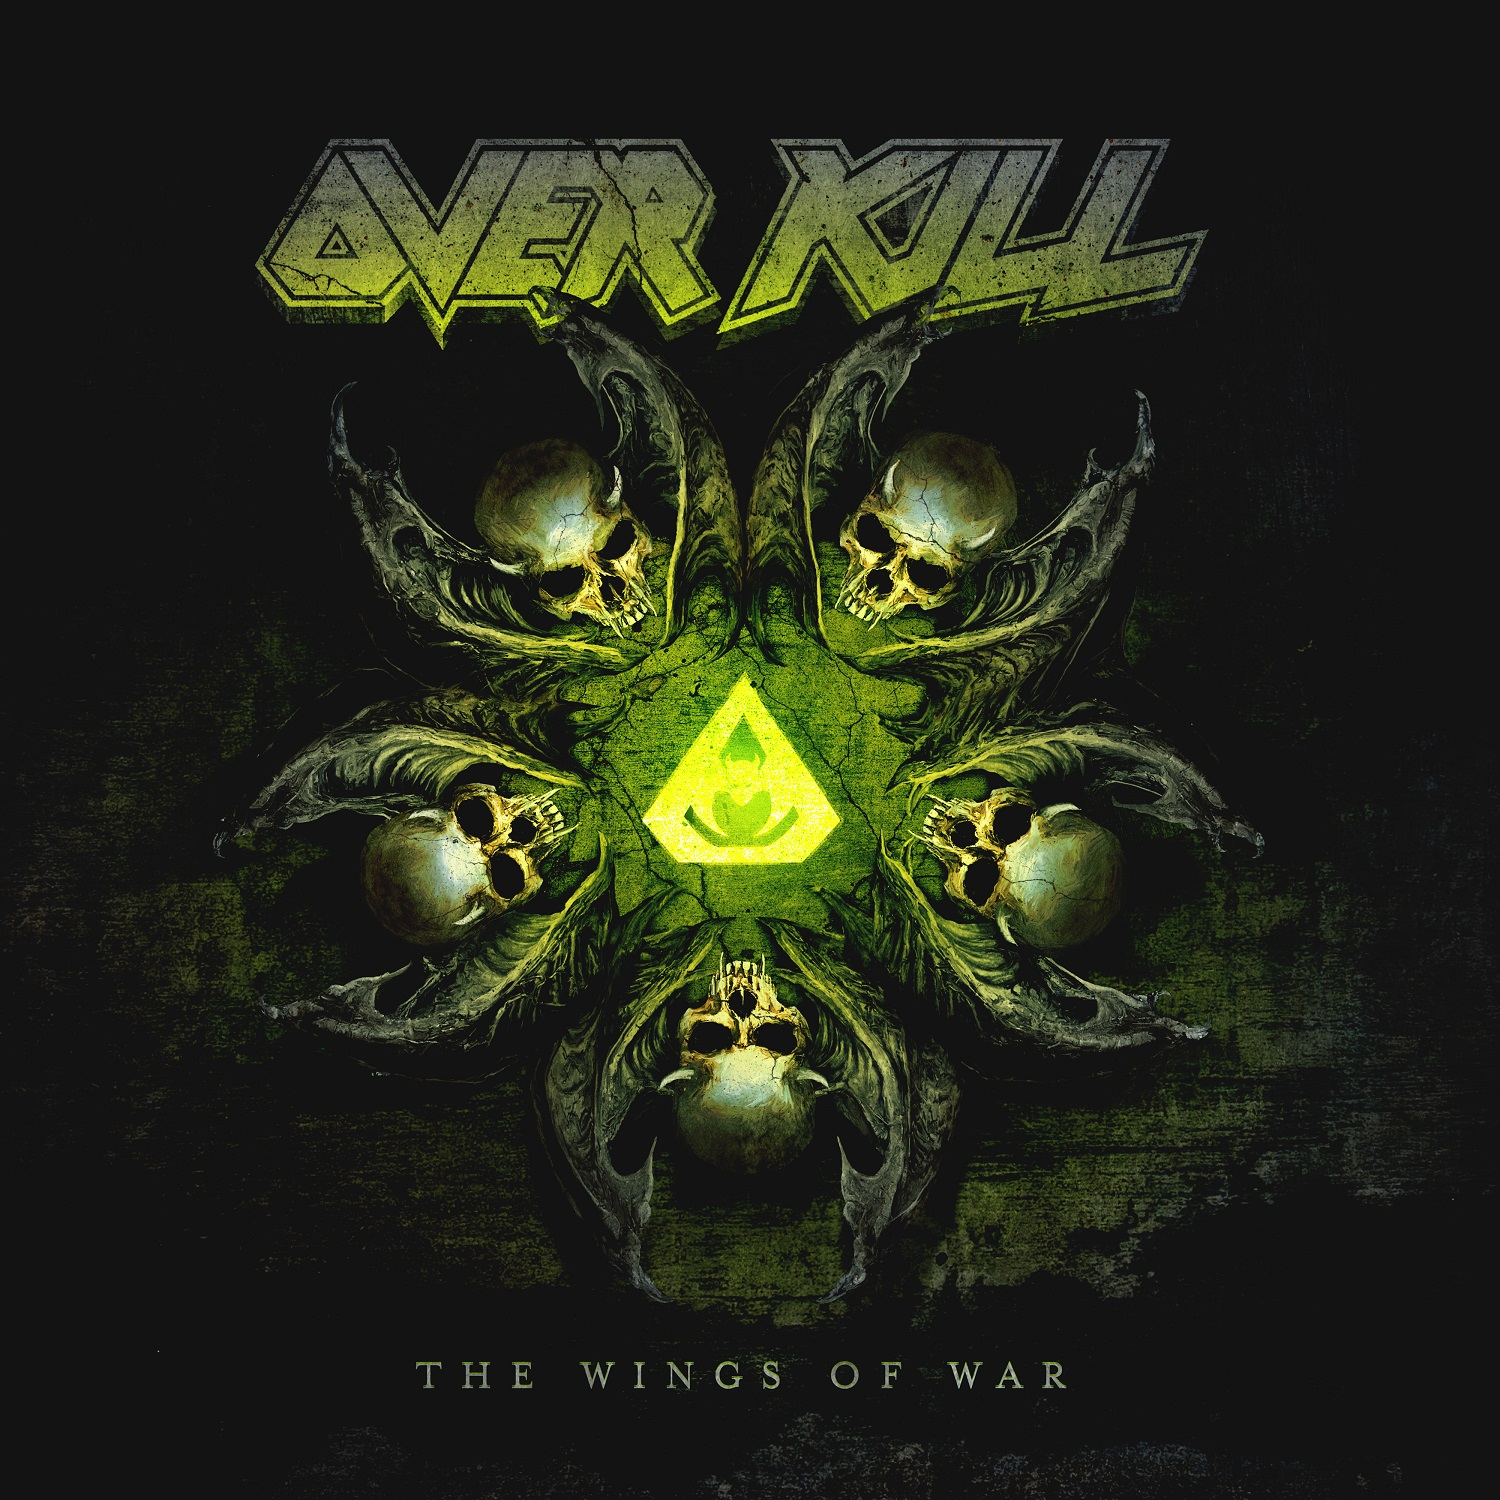 Overkill Reveal New Album, The Wings Of War, Out February 22, 2019